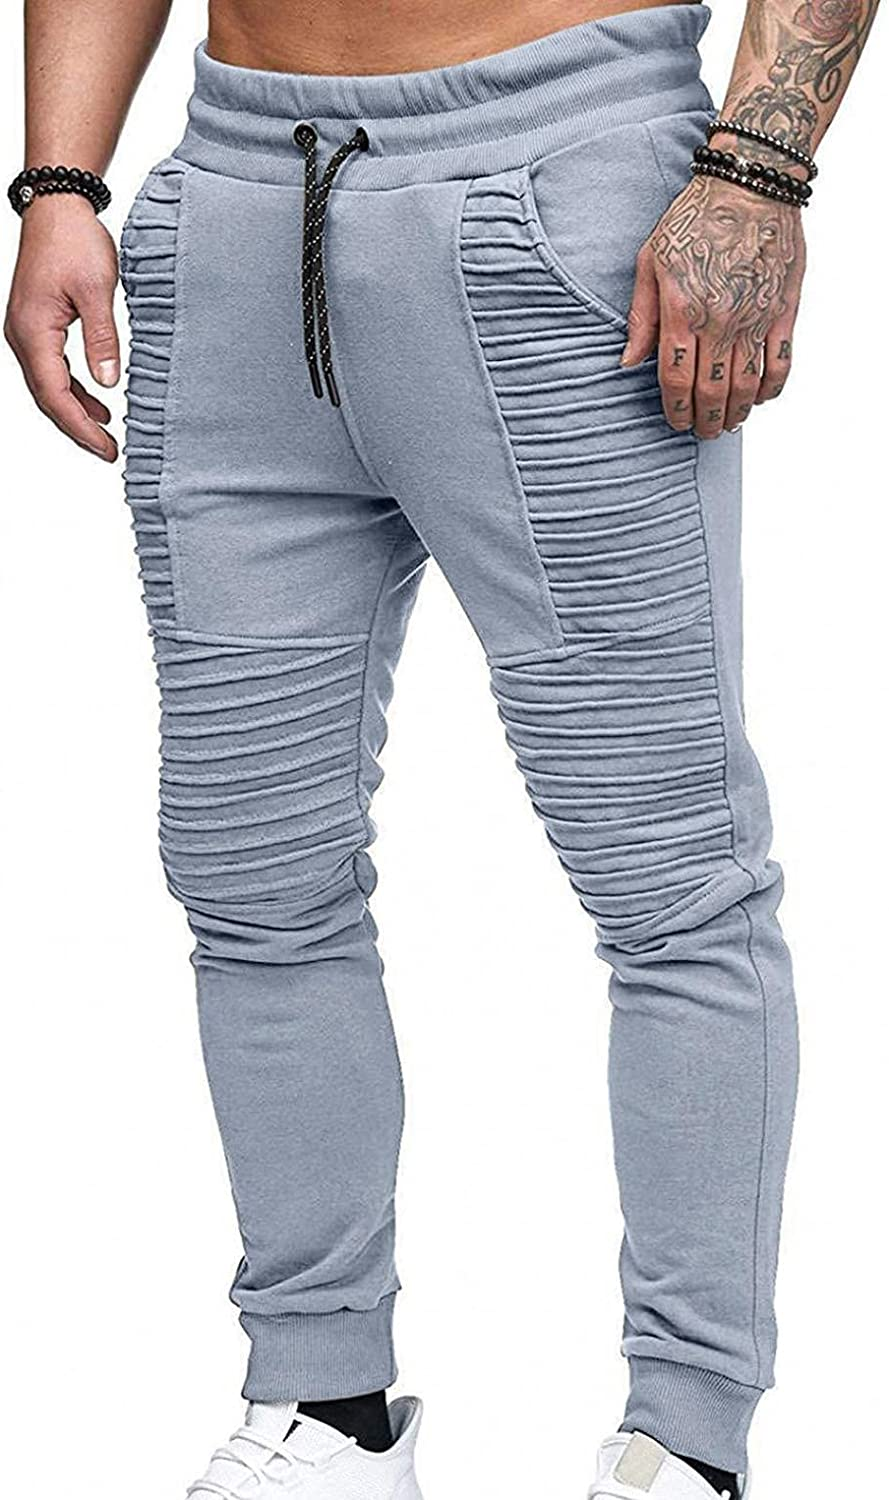 PHSHY Mens Casual Drawstring Elastic Waist Stretch Gym Workout Bodybuilding Motocycle Pleated Pockets Jogger Sweatpants